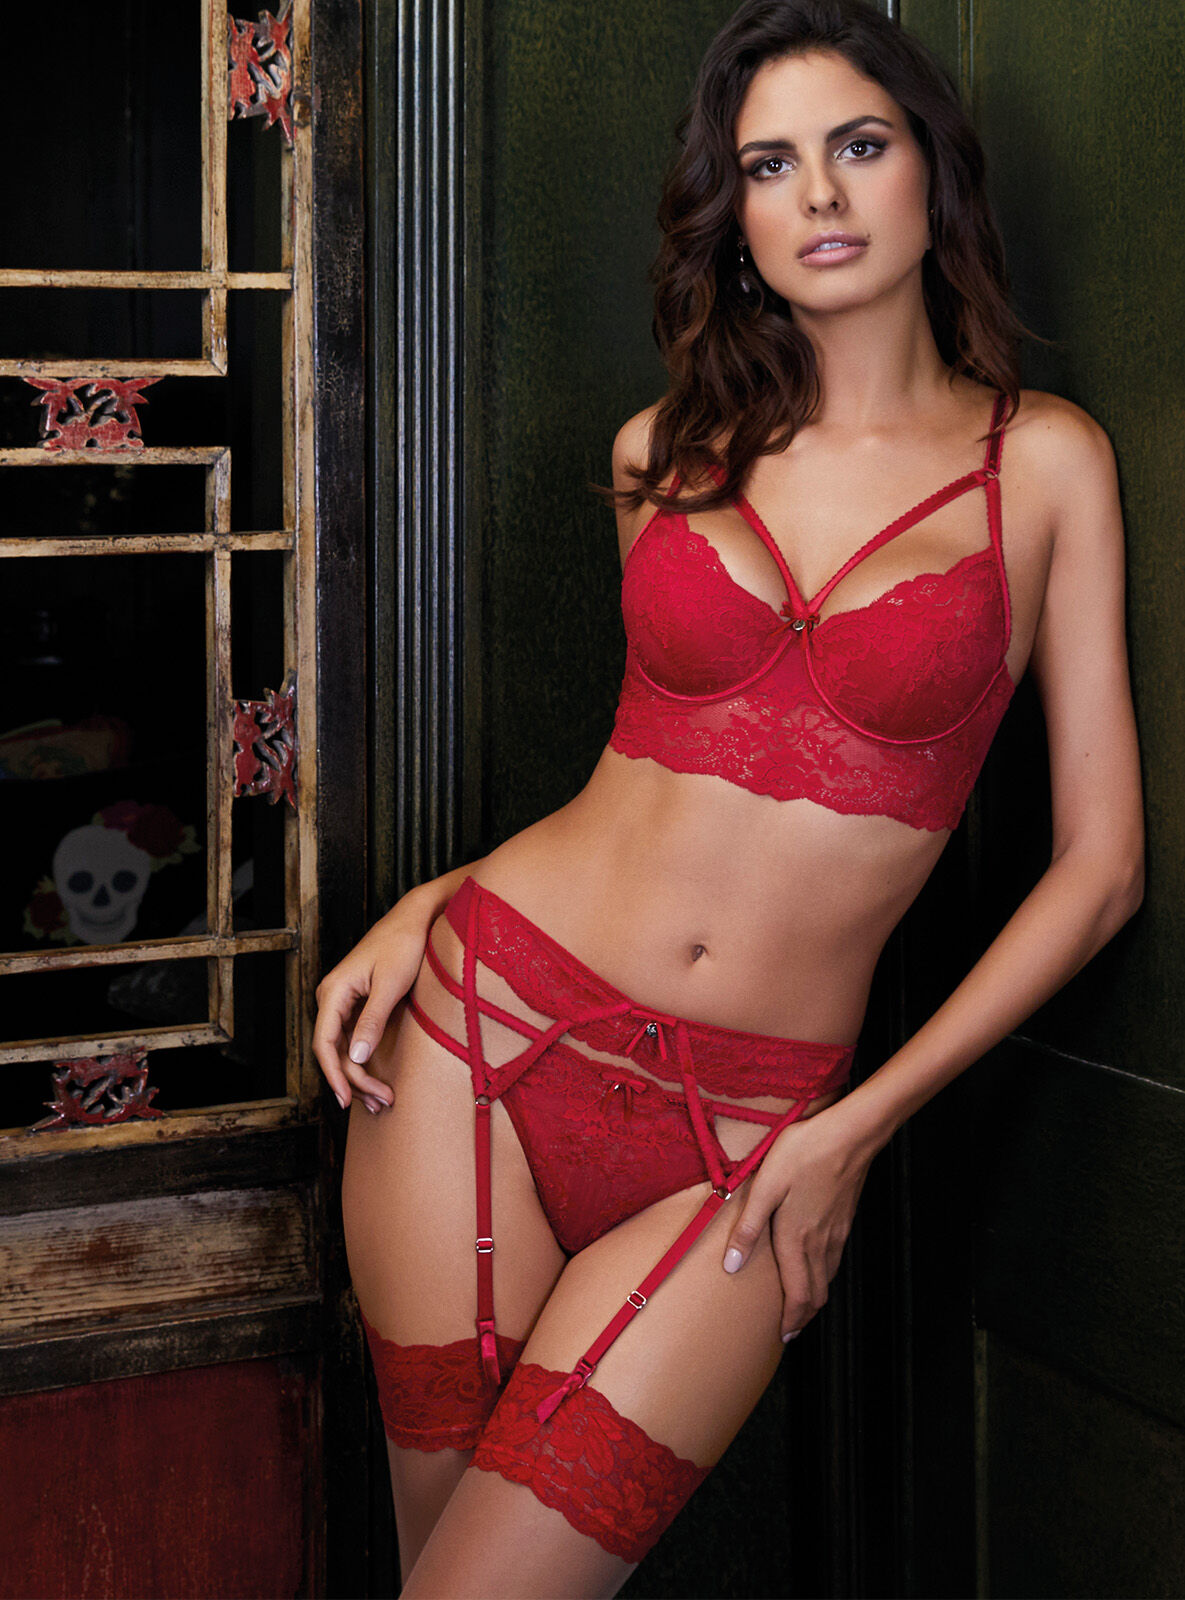 H and m christmas lingerie